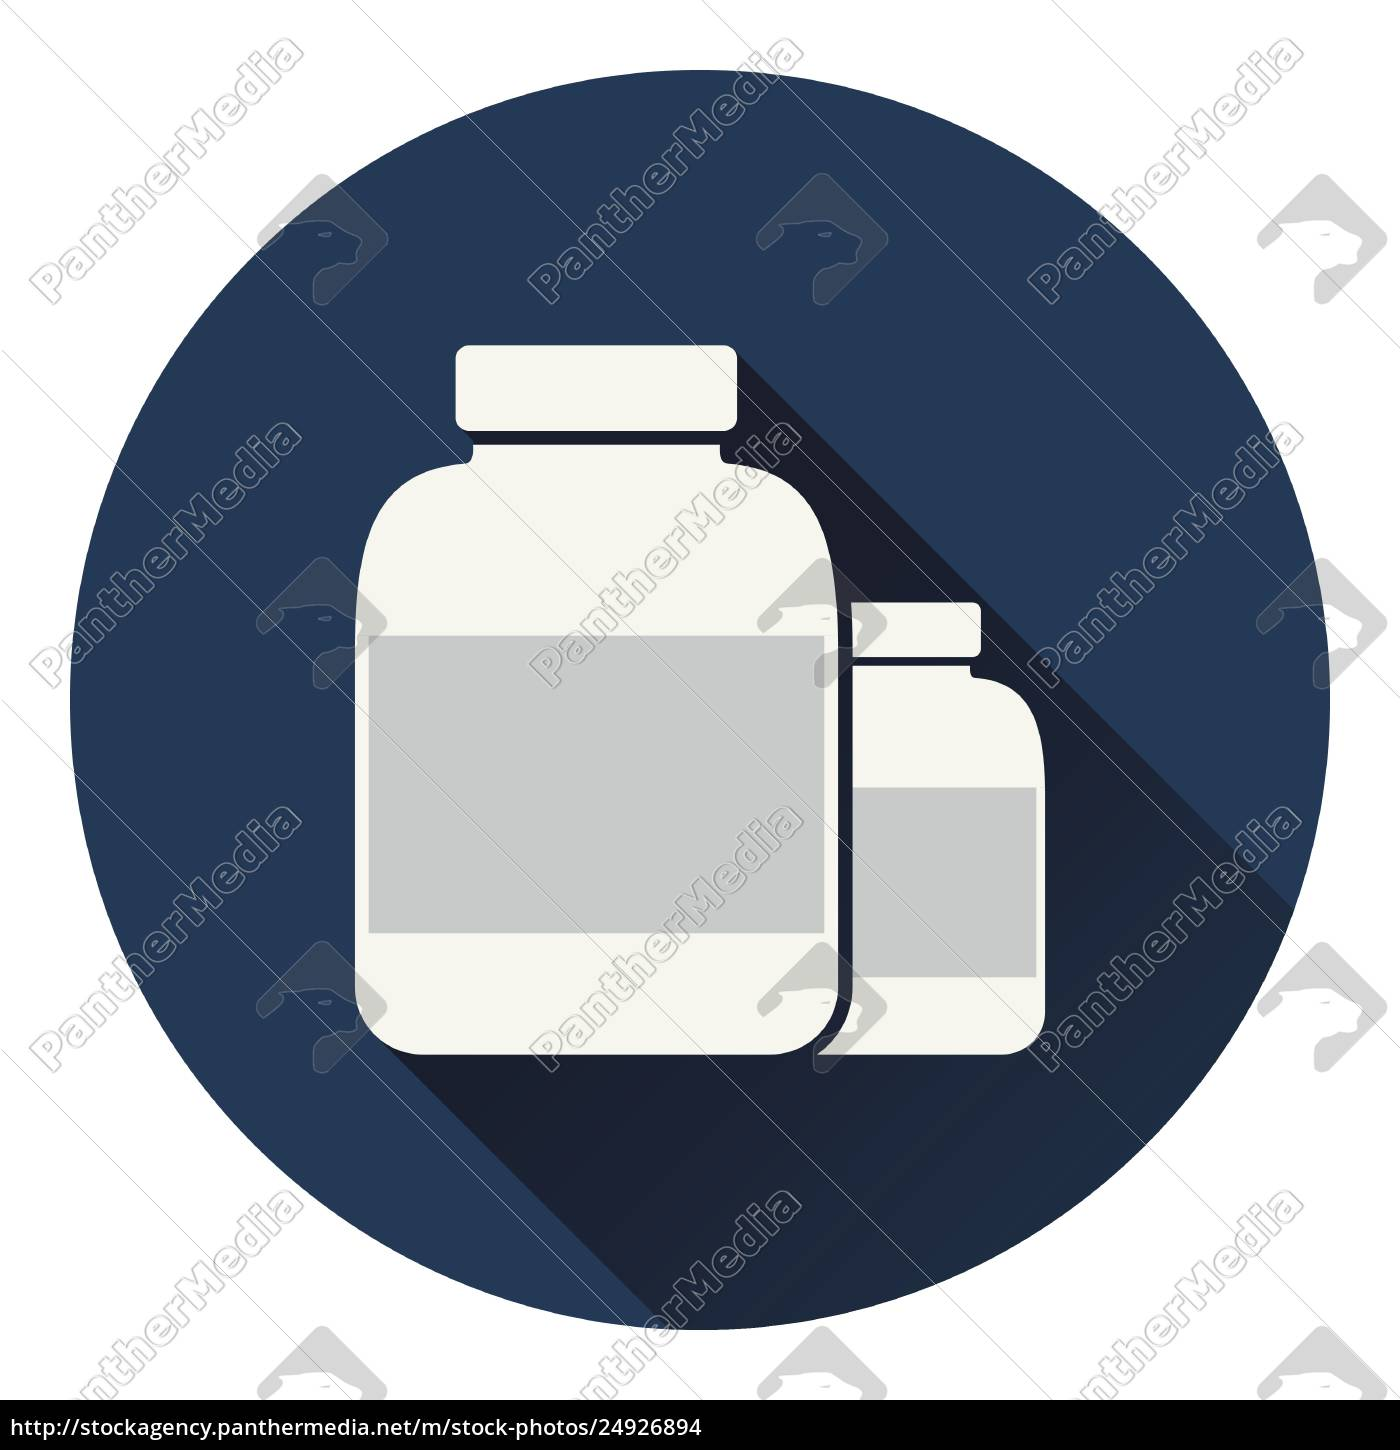 pills, container, icon - 24926894